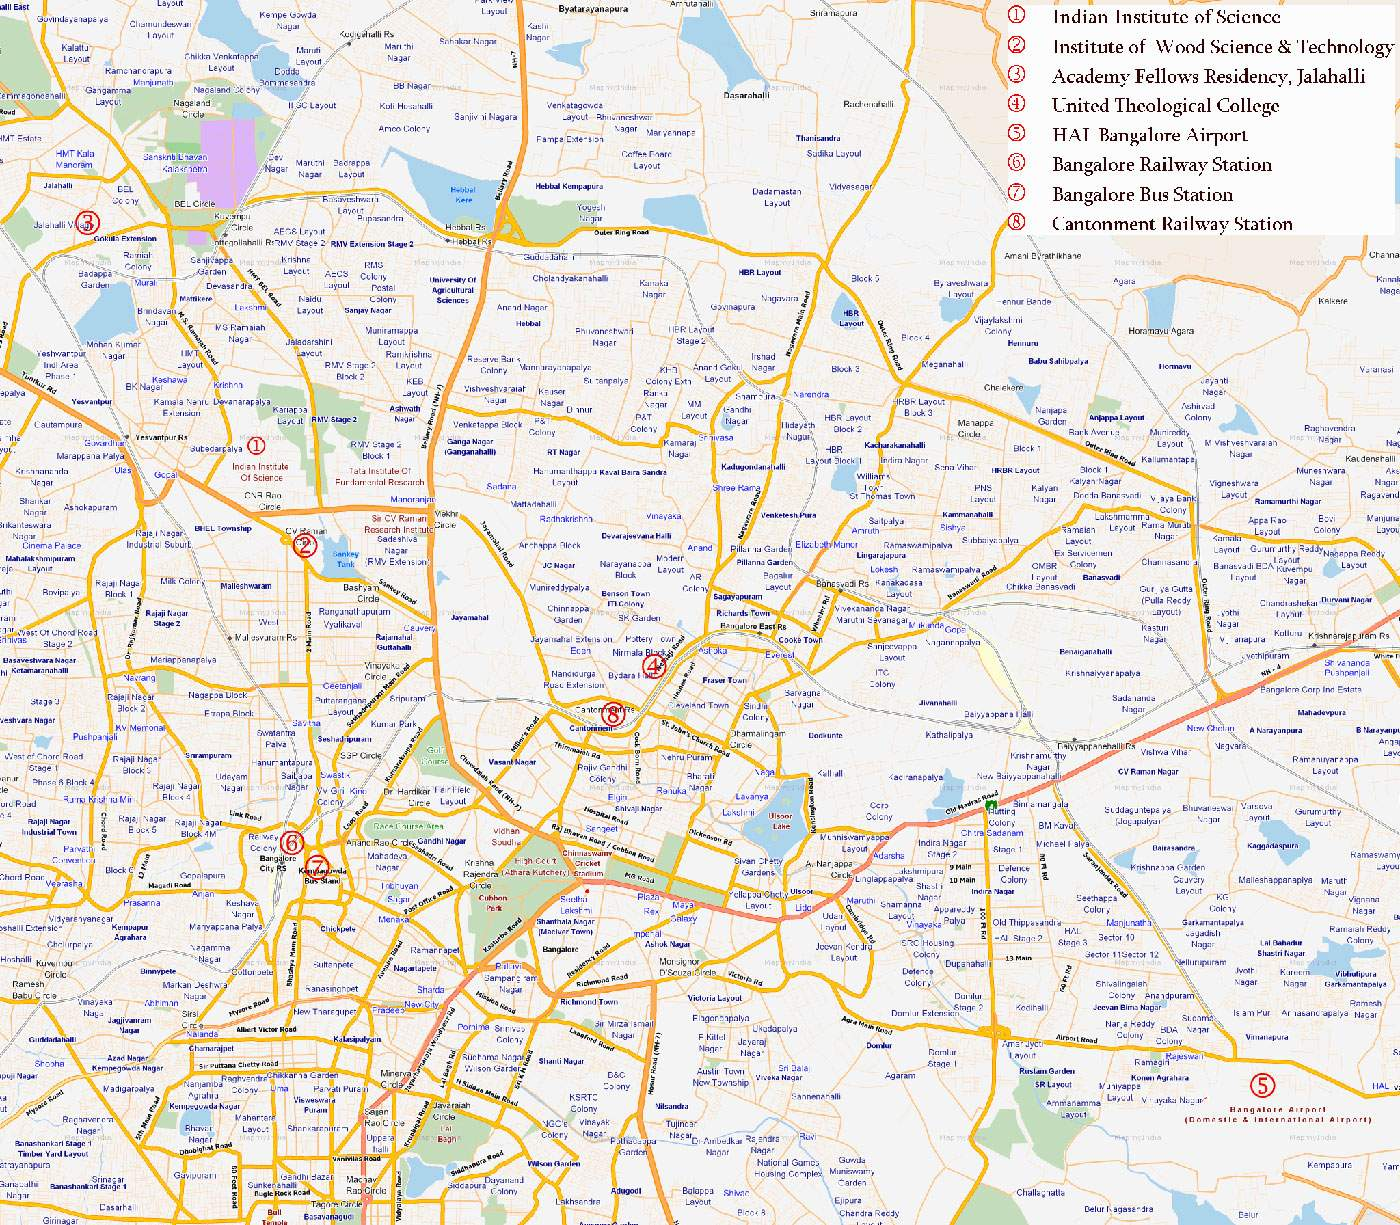 City Map Of Bangalore Large Bangalore Maps for Free Download and Print | High Resolution